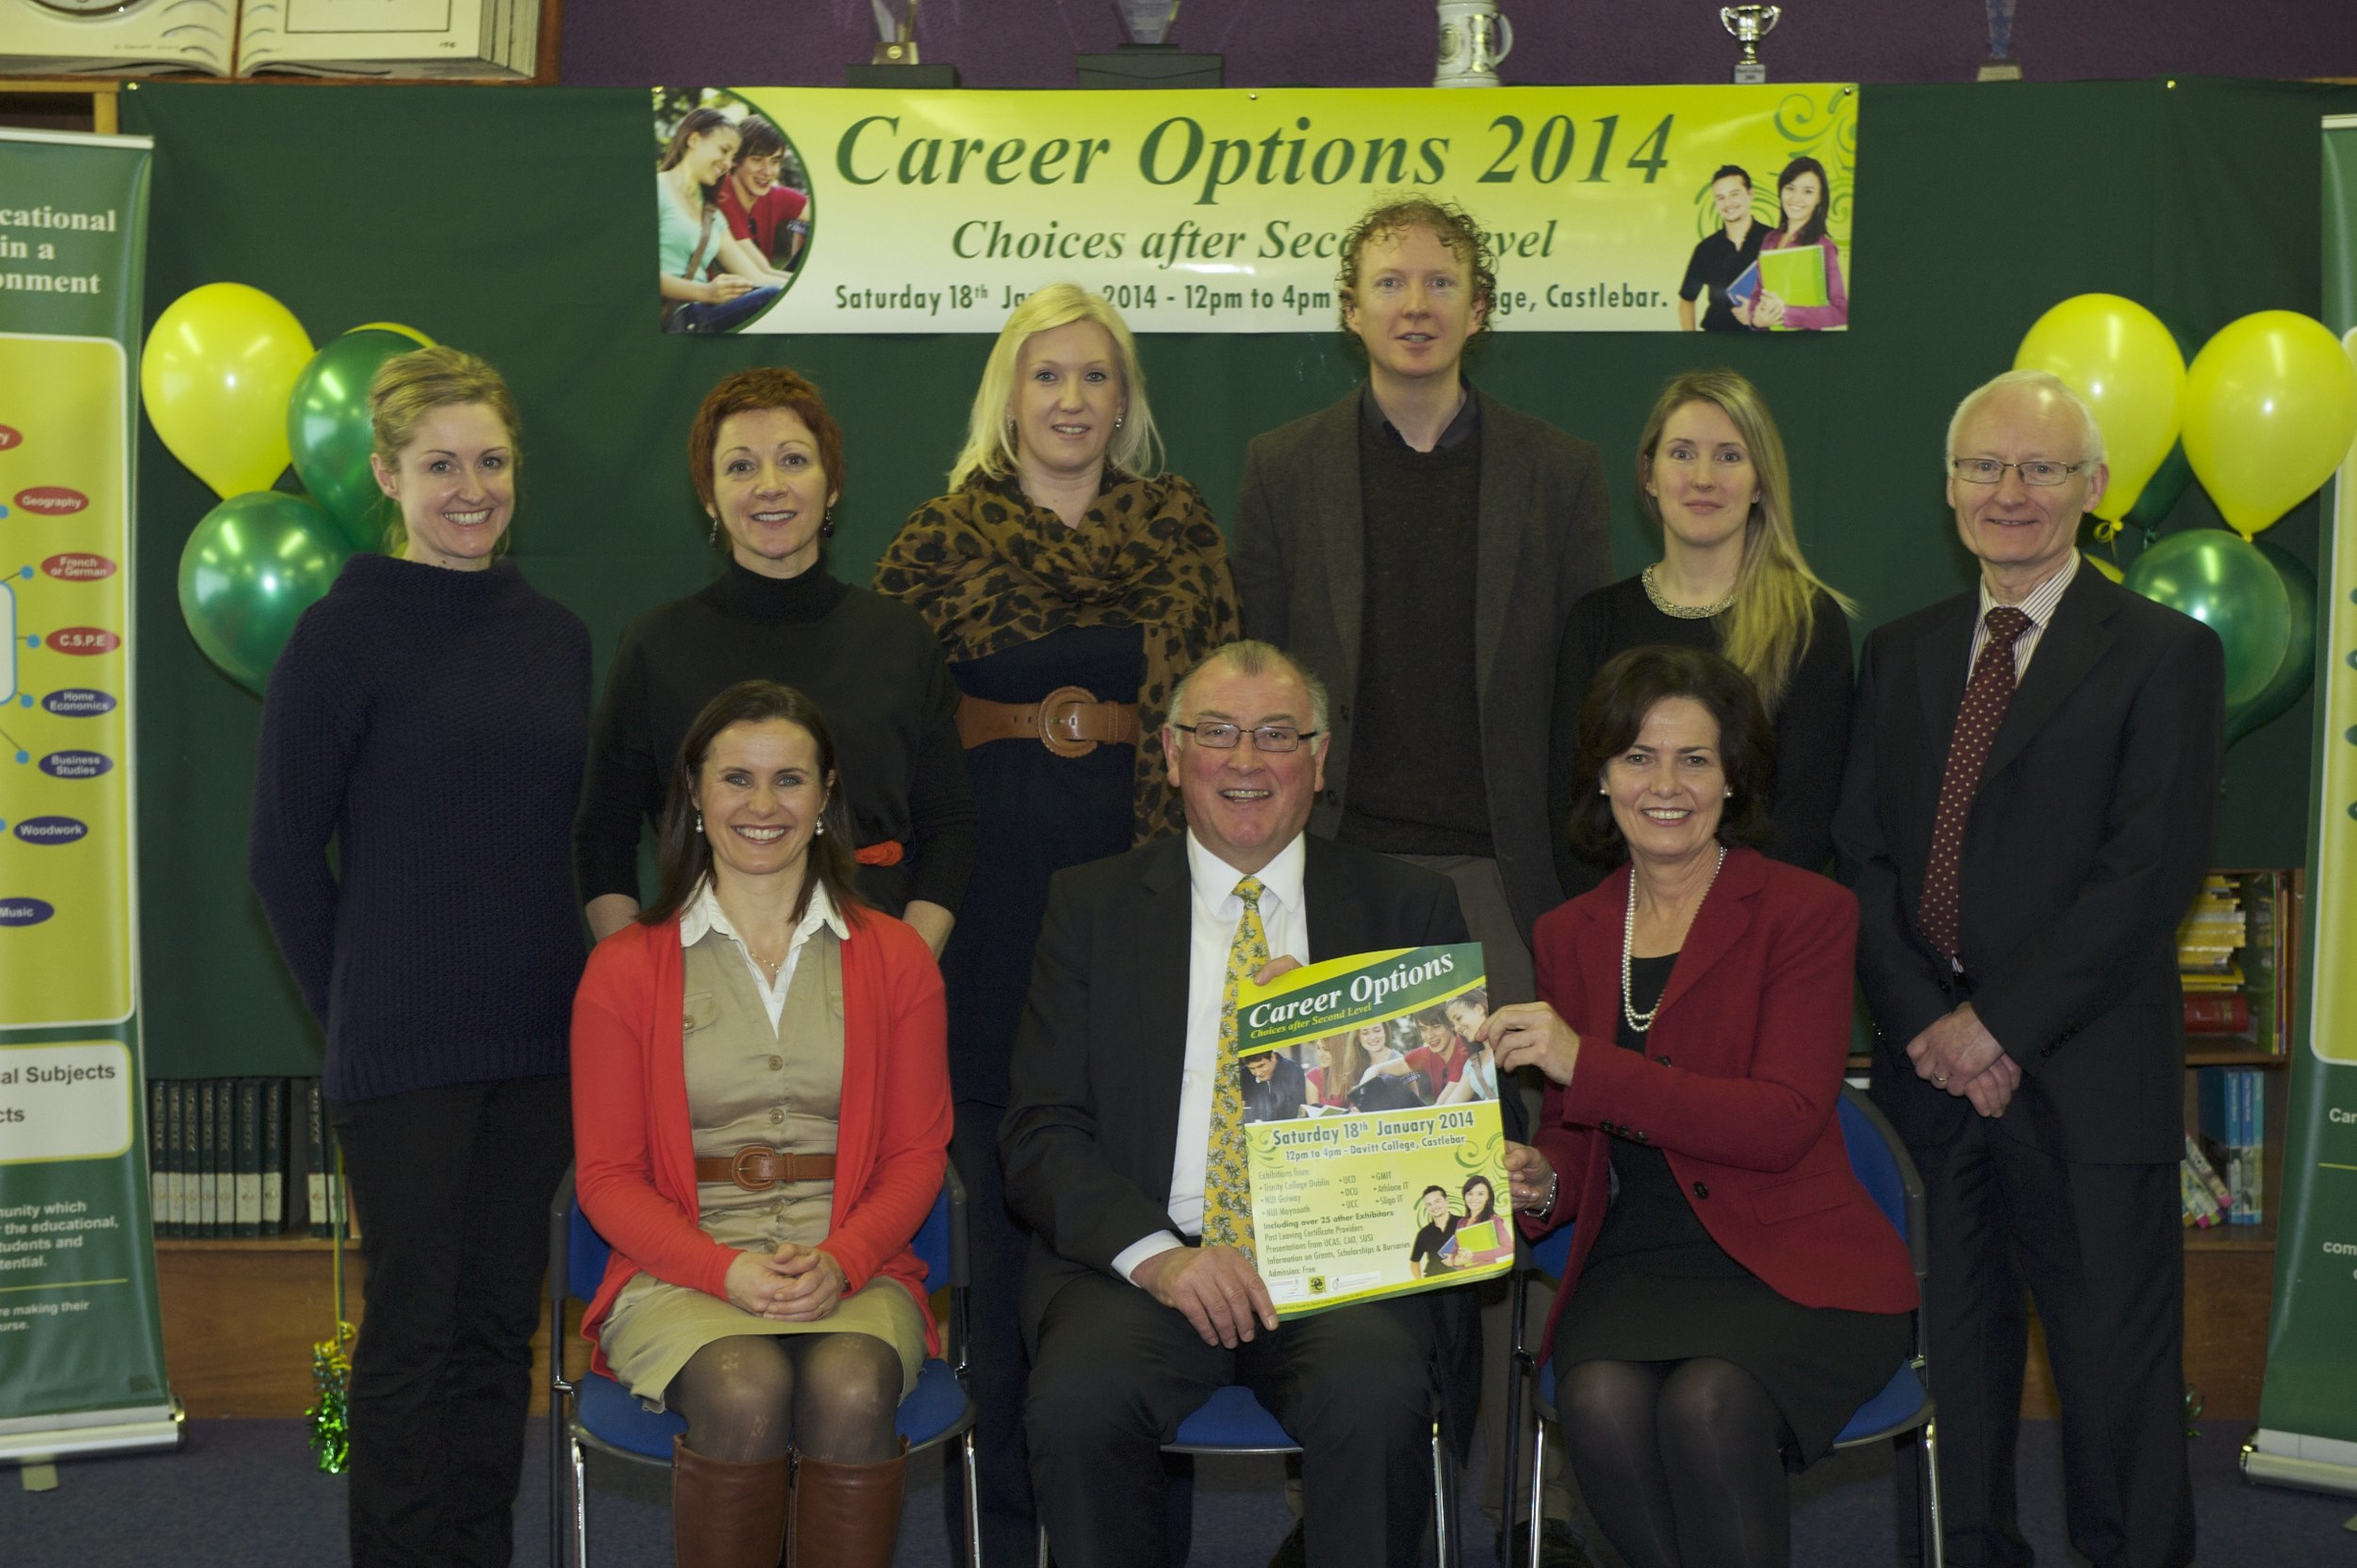 Pictured launching Career Options 2014 at Davitt College, Castlebar were (Back row): Ms. Aine Coyne, Davitt College Organising Committee; Ms. Bernie Lennon, Davitt College Organising Committee; Ms. Tara O'Brien, Davitt College Organising Committee; Mr. Fiachra MacGabhann, Castlebar College of Further Education; Ms. Emma Nestor, Davitt College Organising Committee; ); Mr. Ger King, Deputy Principal, Davitt College. (Front row): Ms. Ruth Carney, Davitt College Organising Committee; Mr. Seosamh Mac Donncha, Chief Executive Officer, Mayo, Sligo and Leitrim Education and Training Board; Ms. Bernie Rowland, Principal, Davitt College